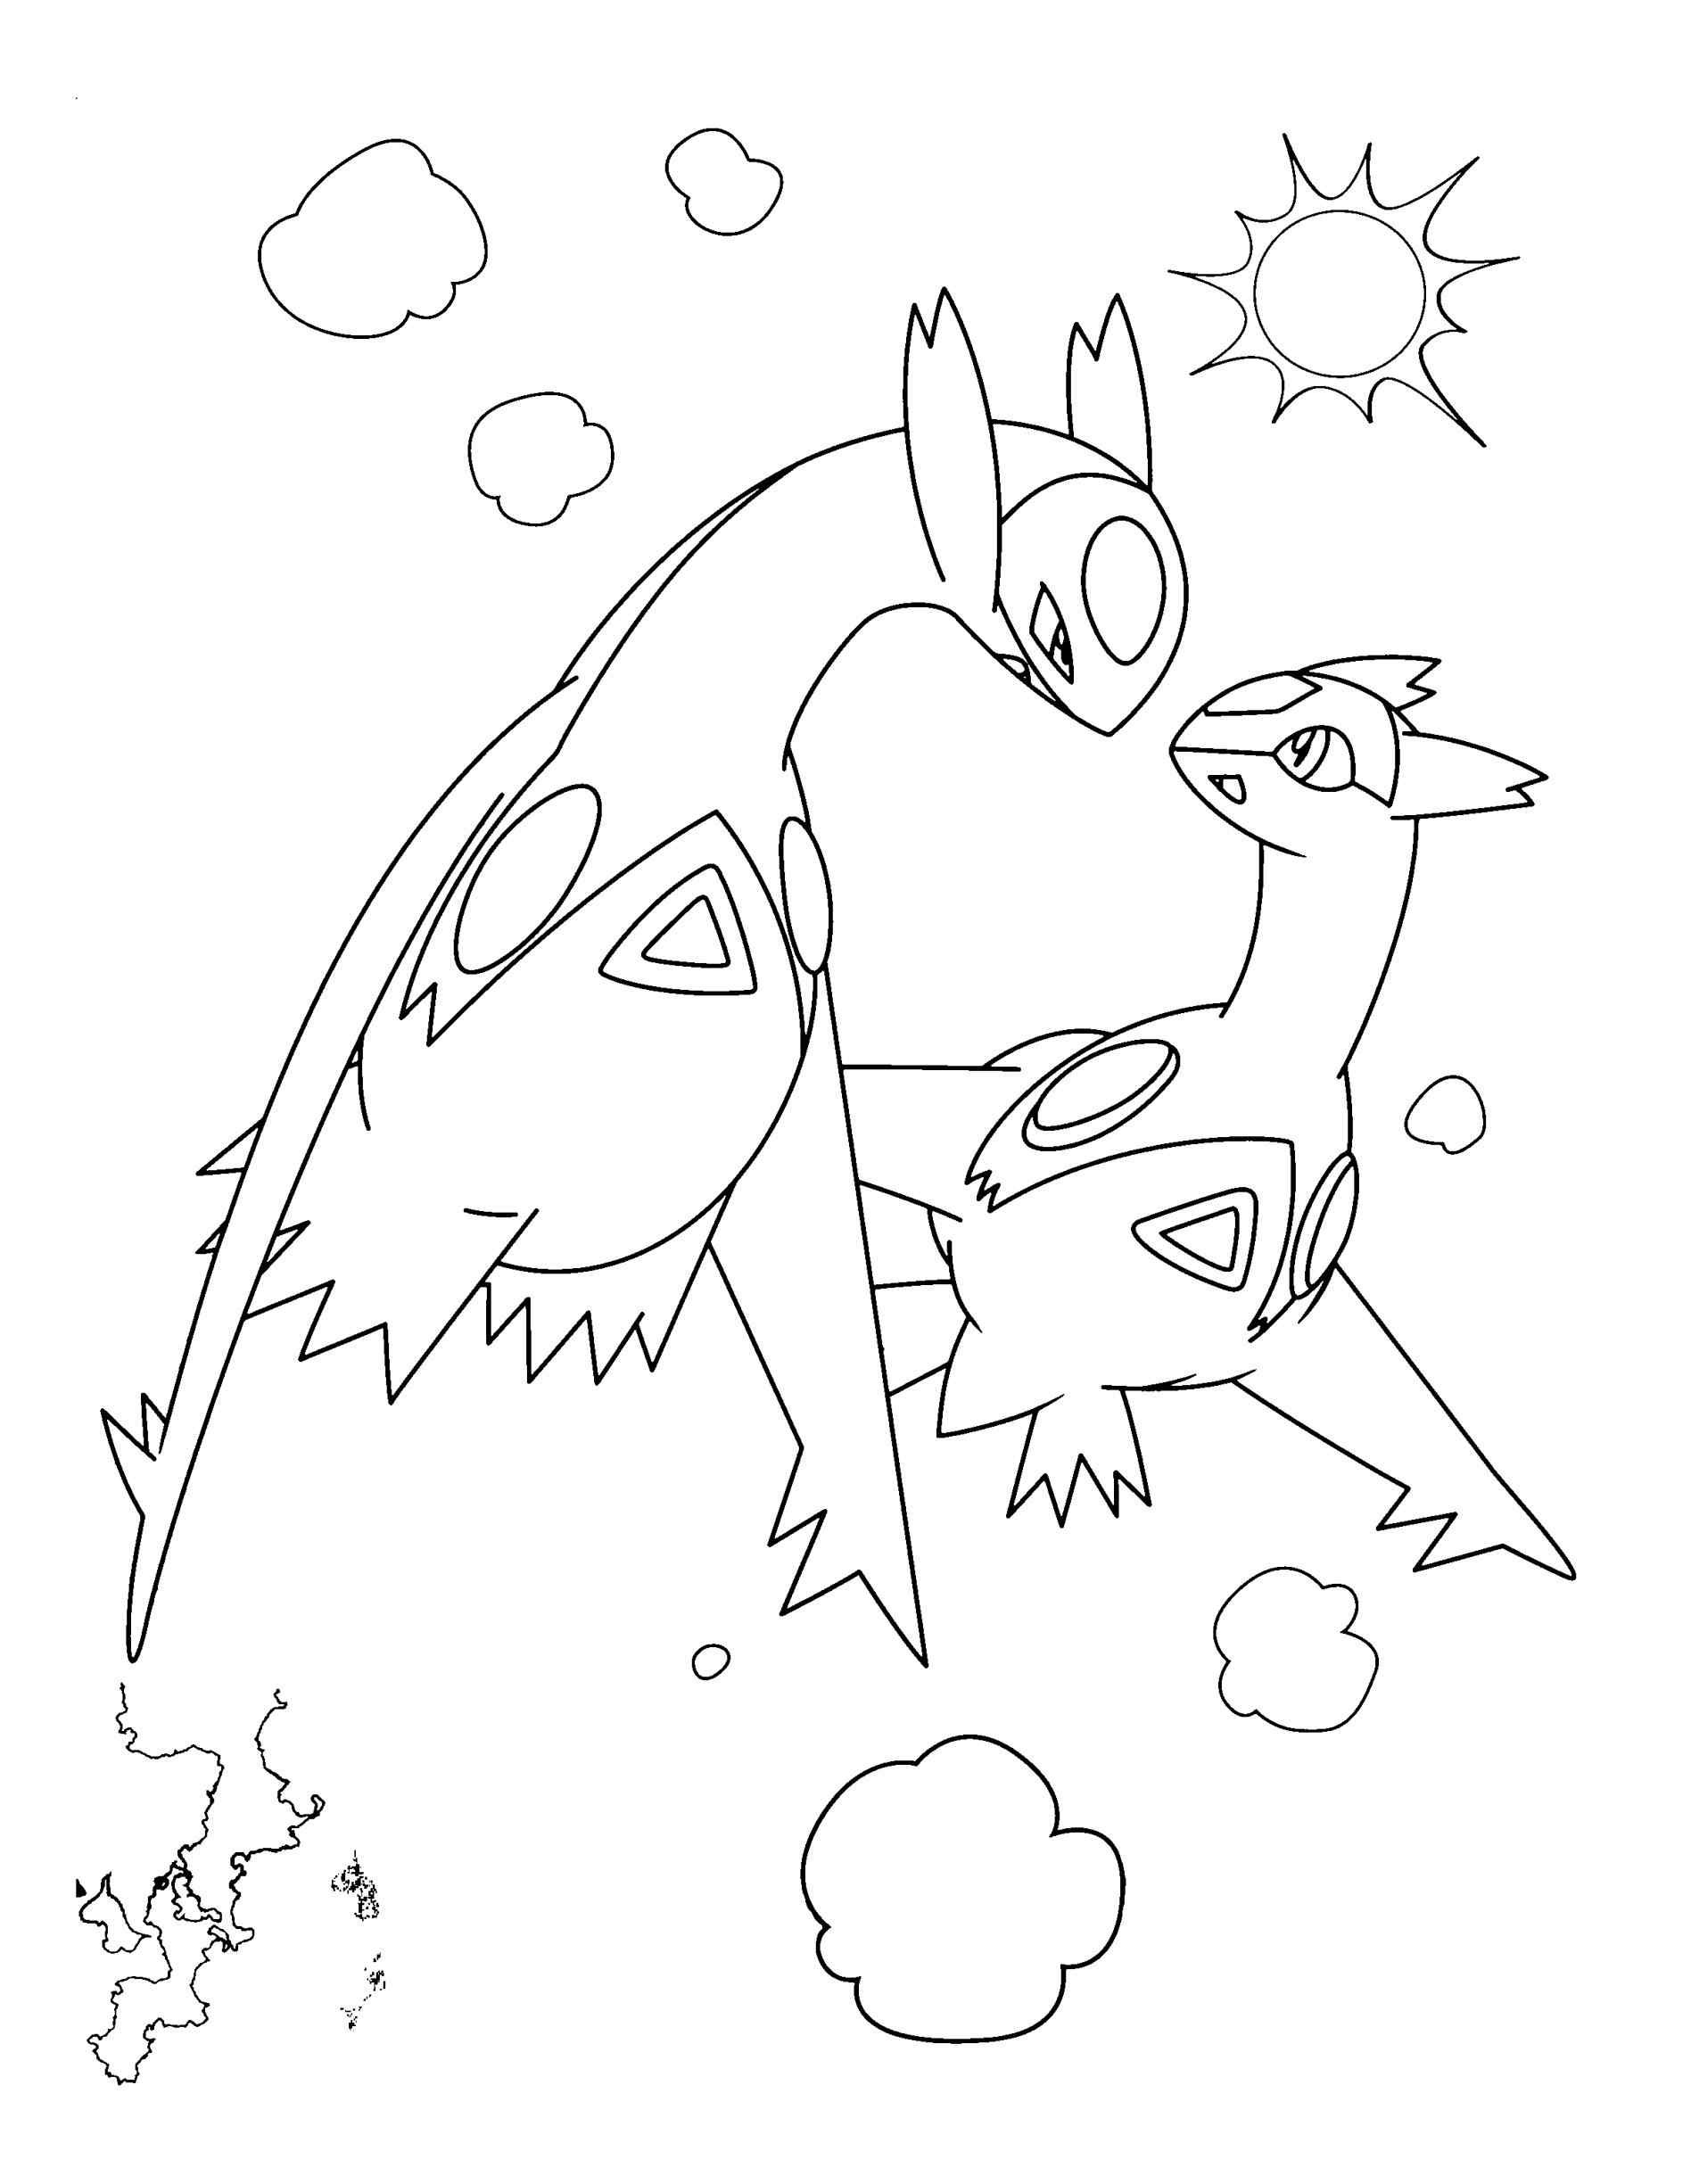 Deoxys Coloring Page At Getcolorings